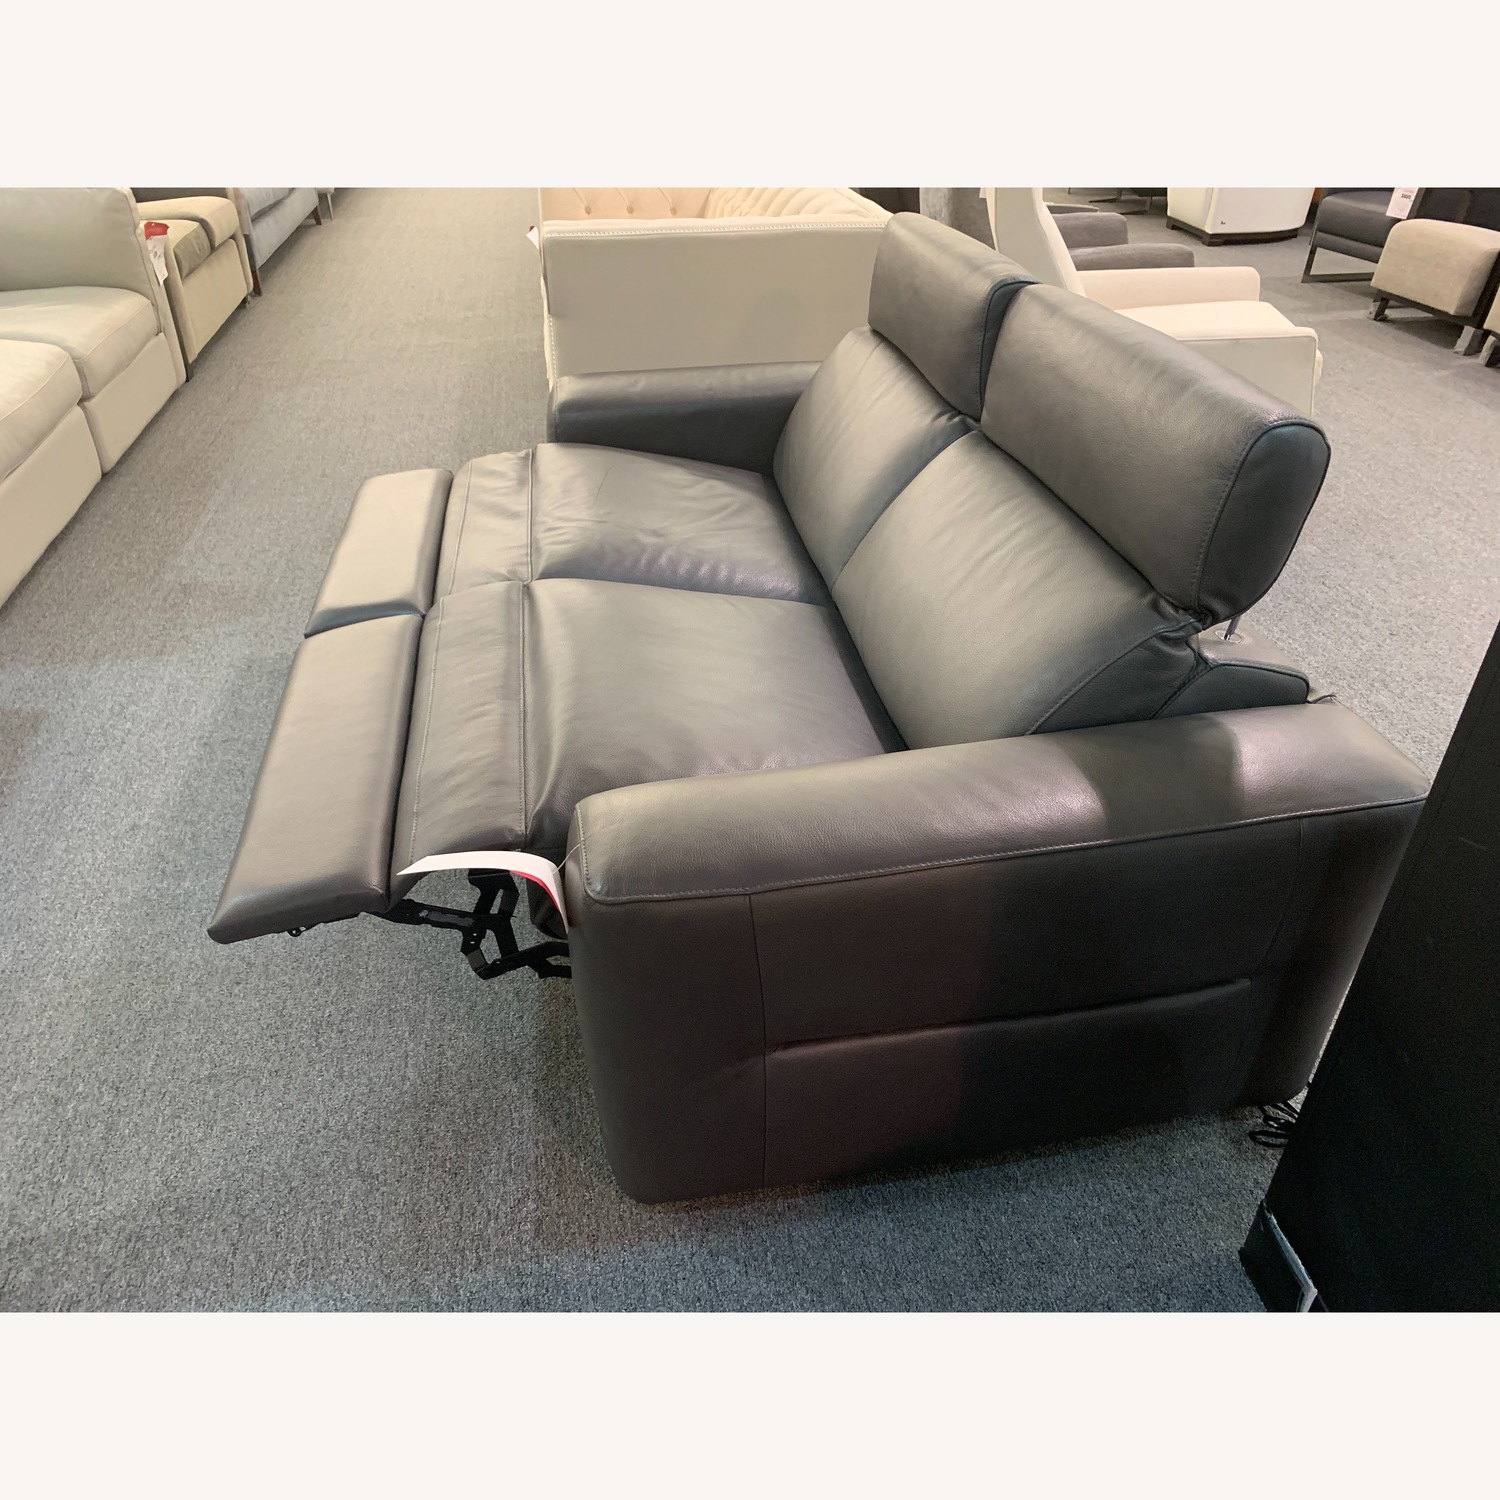 Chateau D'Ax Toby Reclining Sofa - image-2